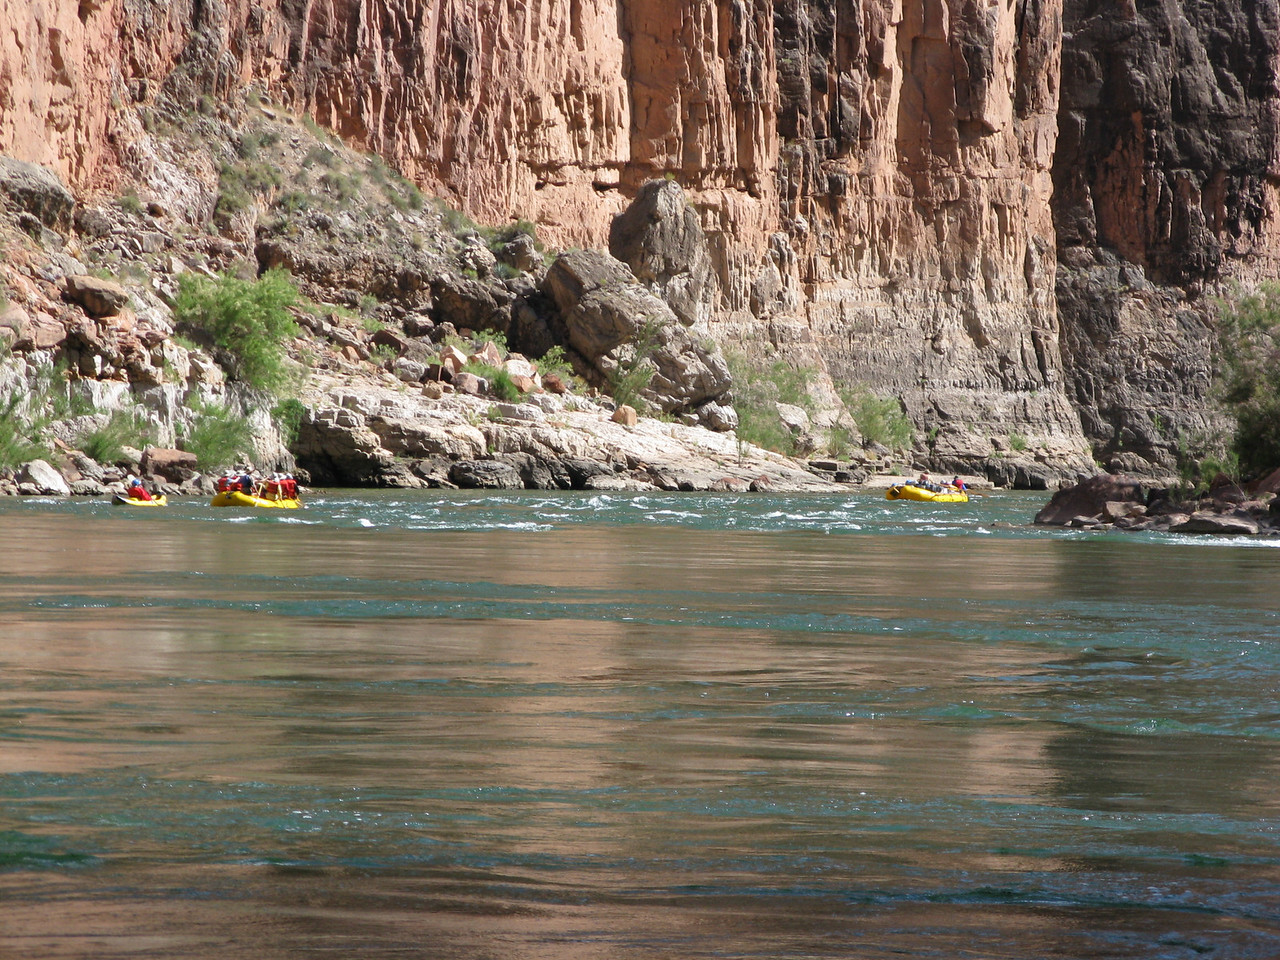 Small rafts and a kayak start through the rapid.